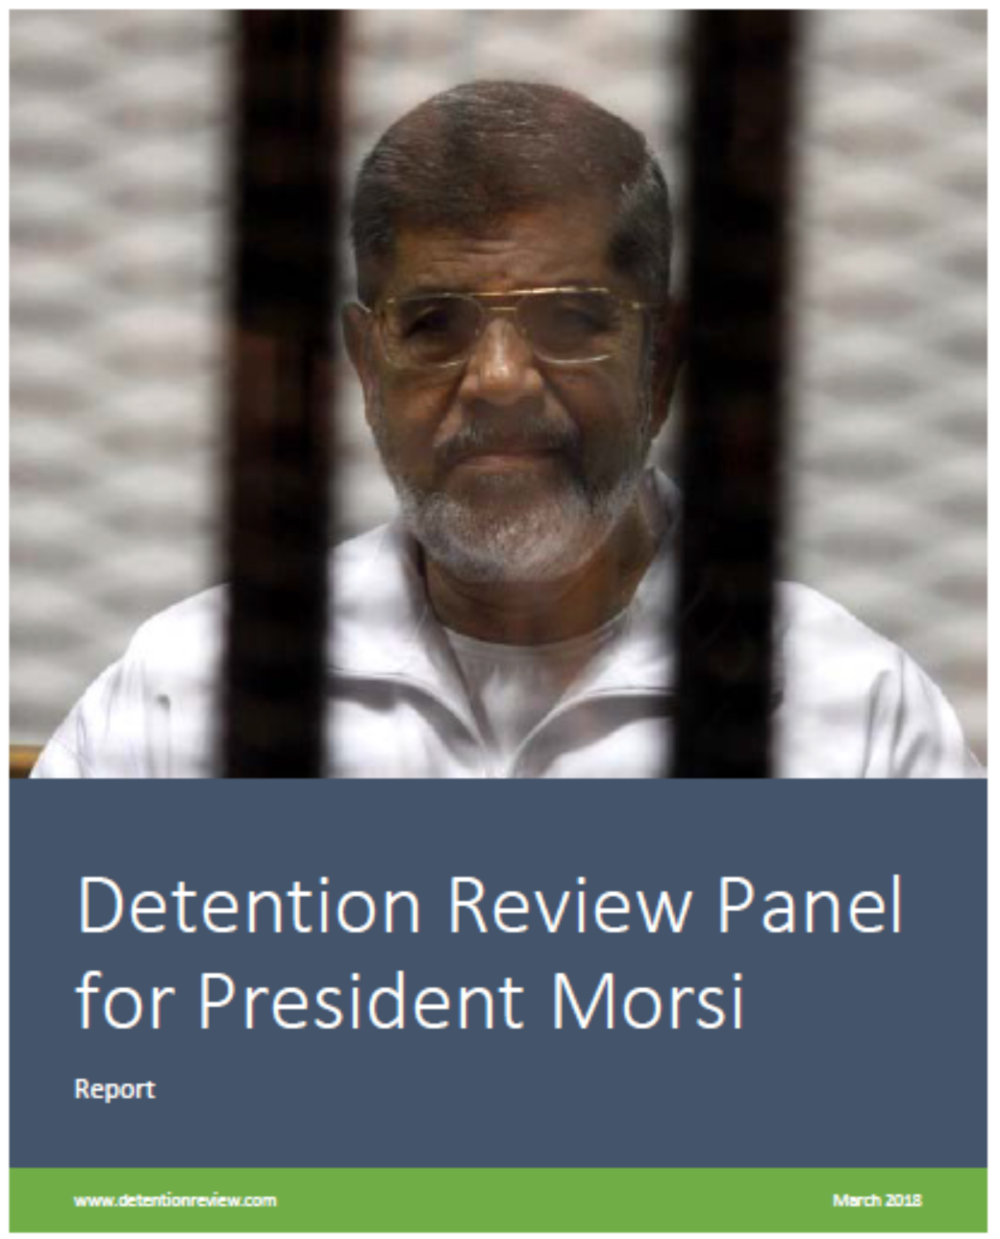 DRP Report — Detention Review Panel 529458c131